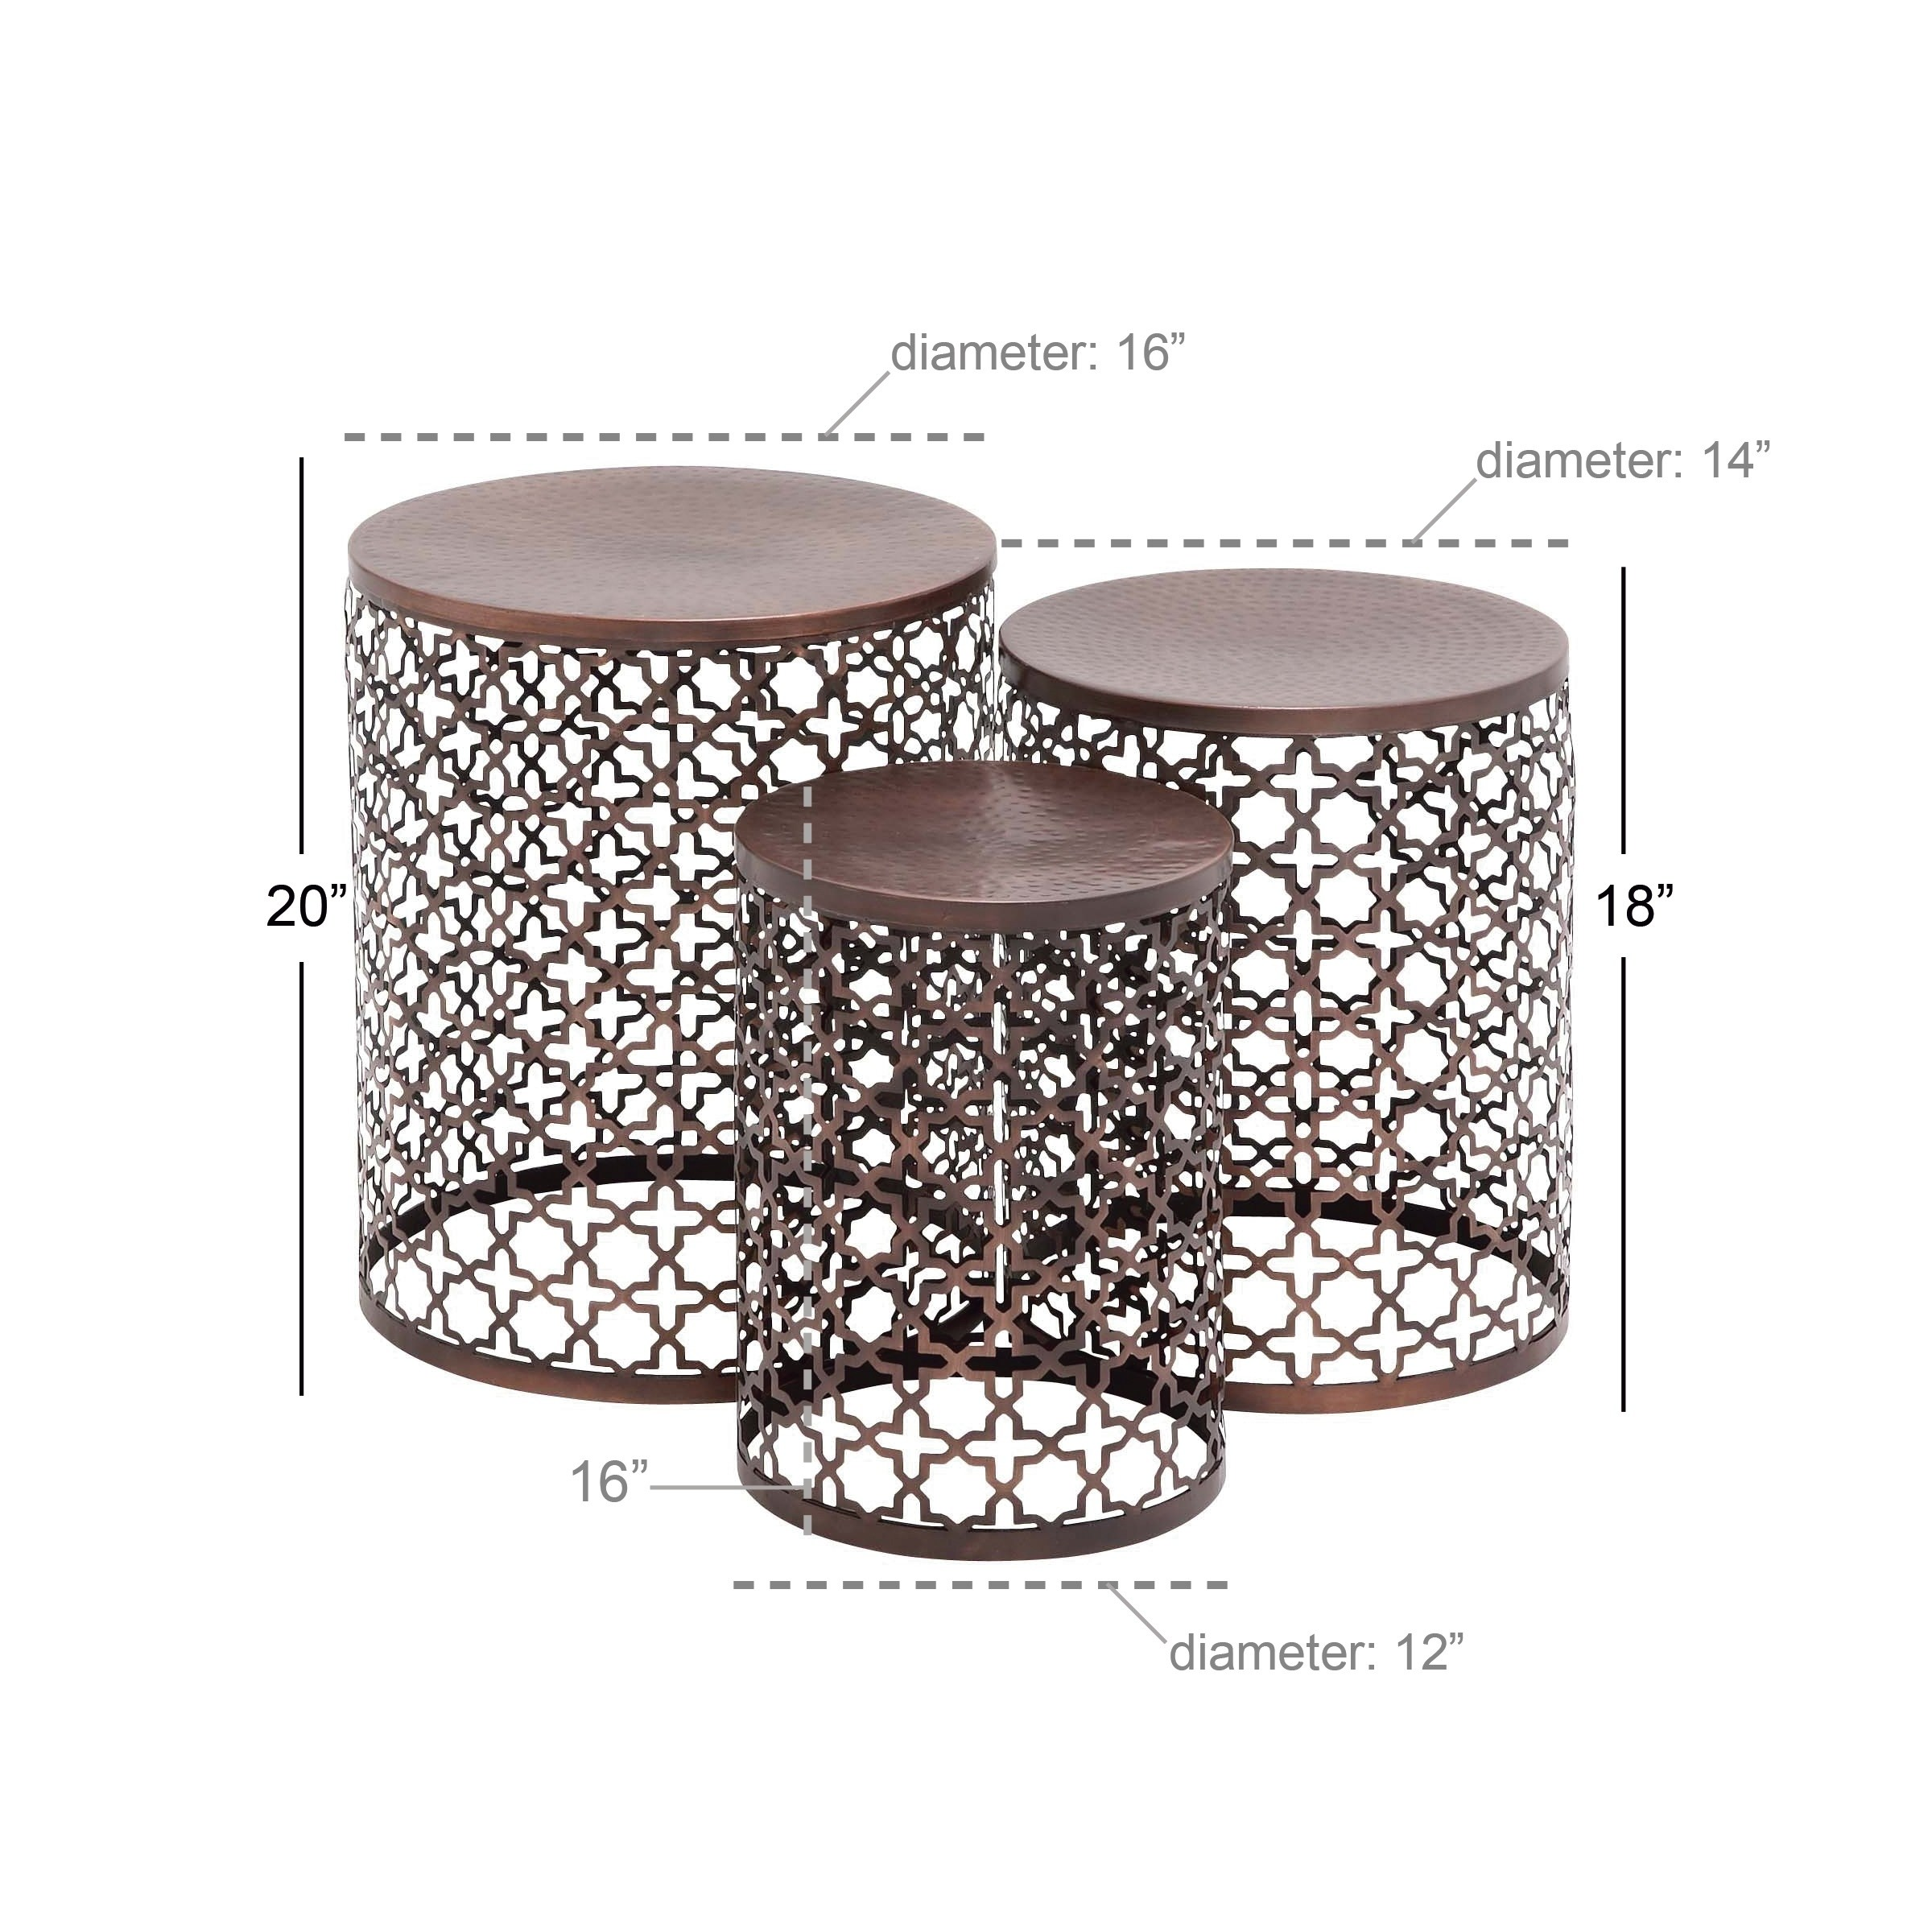 set contemporary and inch accent tables studio free shipping today top table decorations mosaic bistro chairs modern dining kirklands wall art used patio furniture drum throne